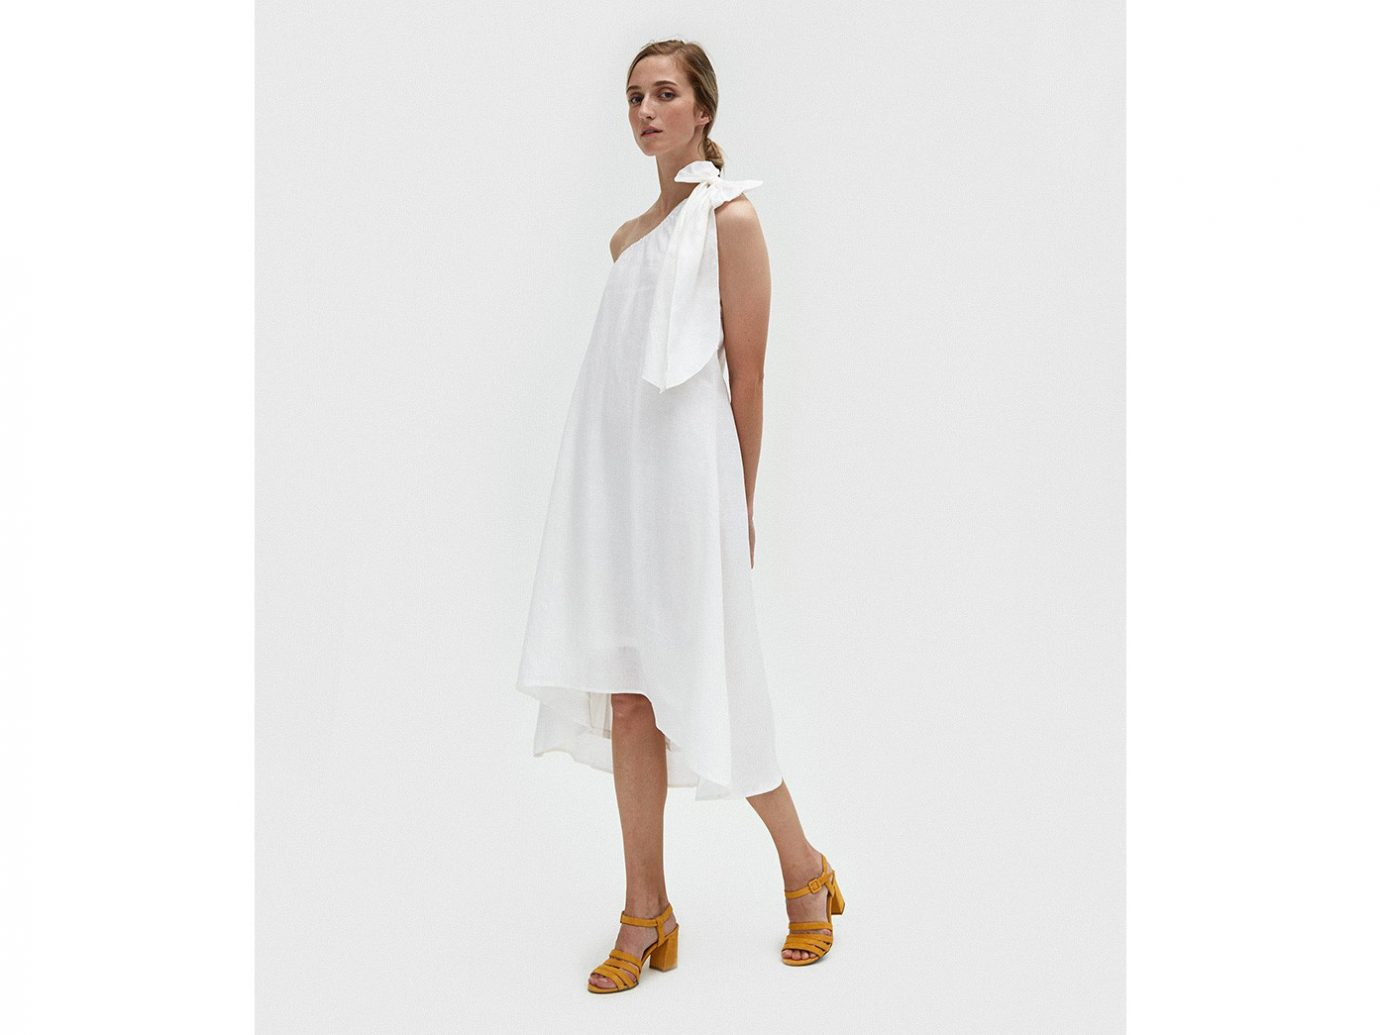 Stelen Commune Dress for summer